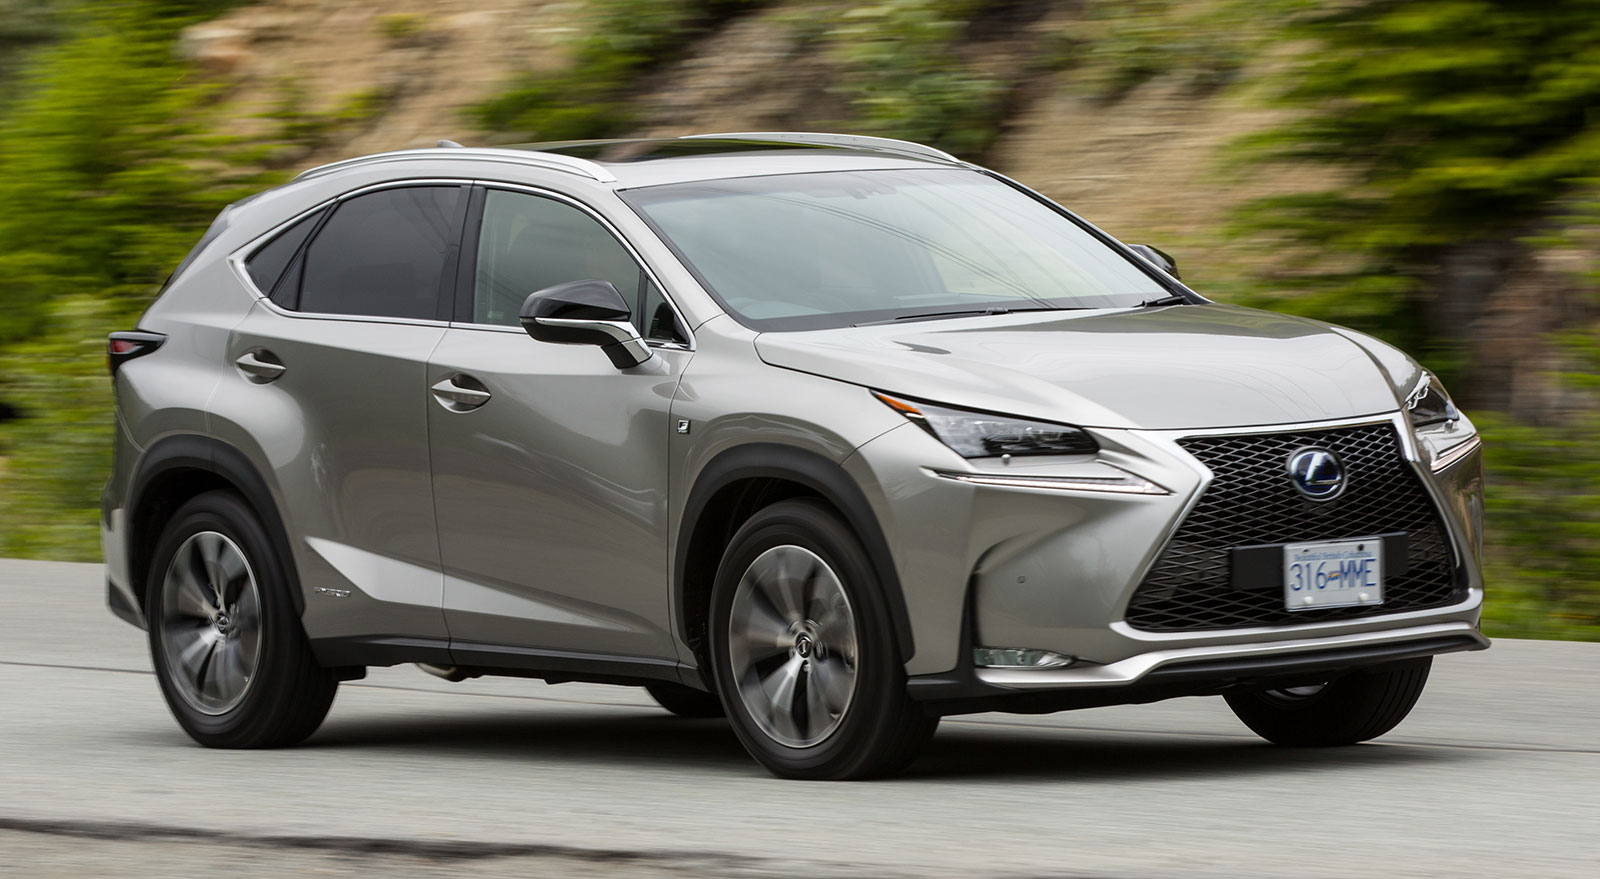 Suv Lexus 2018 >> DRIVEN: Lexus NX 200t SUV tested in British Columbia Image 286416